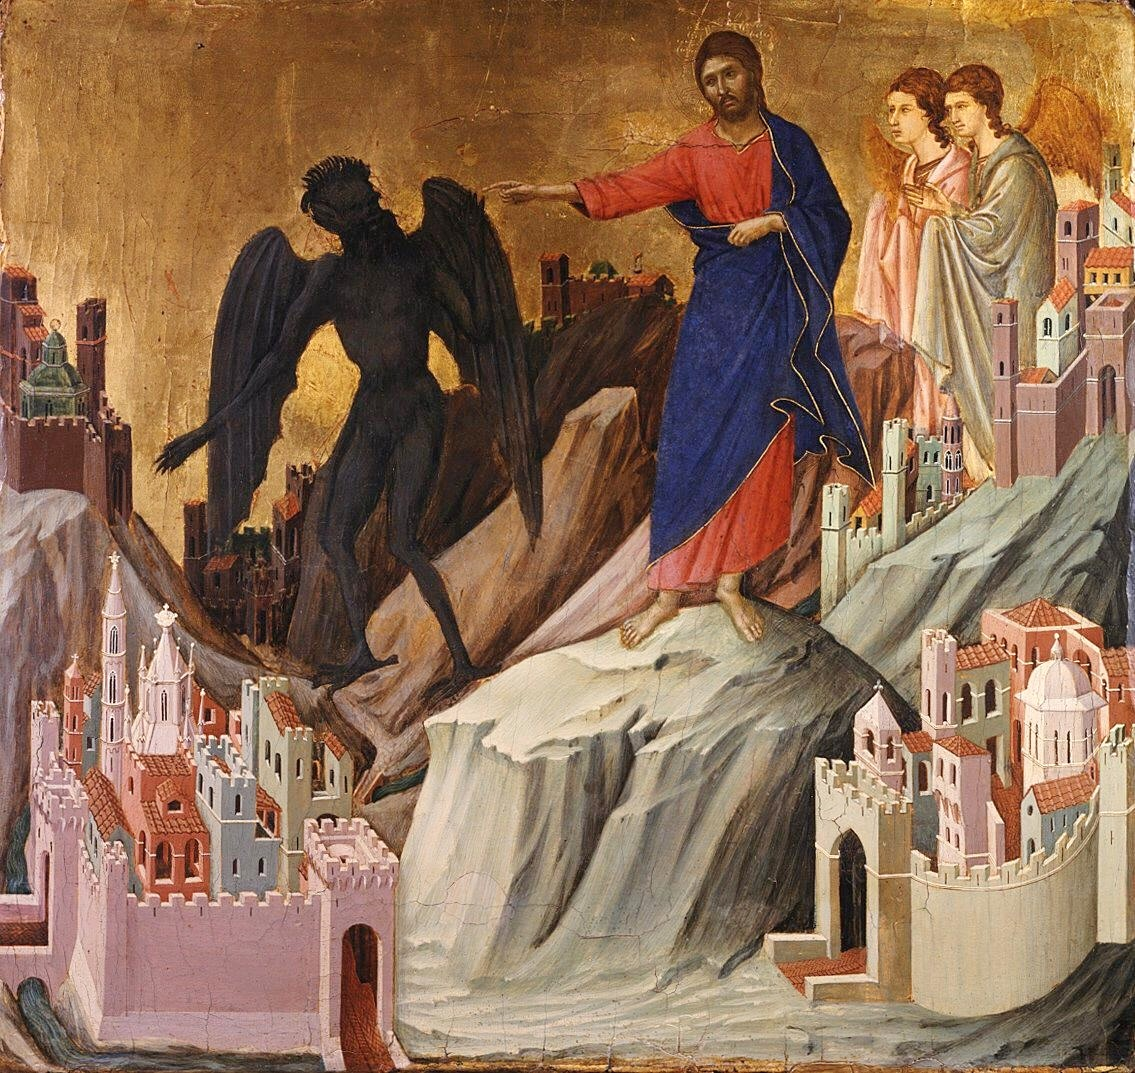 Duccio_-_The_Temptation_on_the_Mount